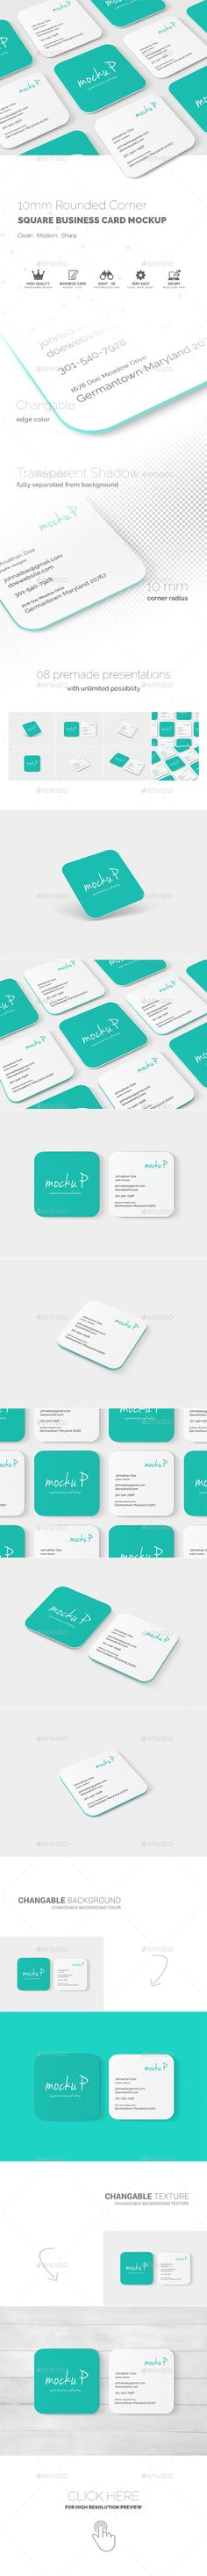 Square Rounded Corner Business Card MockUp  — PSD Template #square business card #mock-up • Download ➝ https://graphicriver.net/item/square-rounded-corner-business-card-mockup/18514750?ref=pxcr